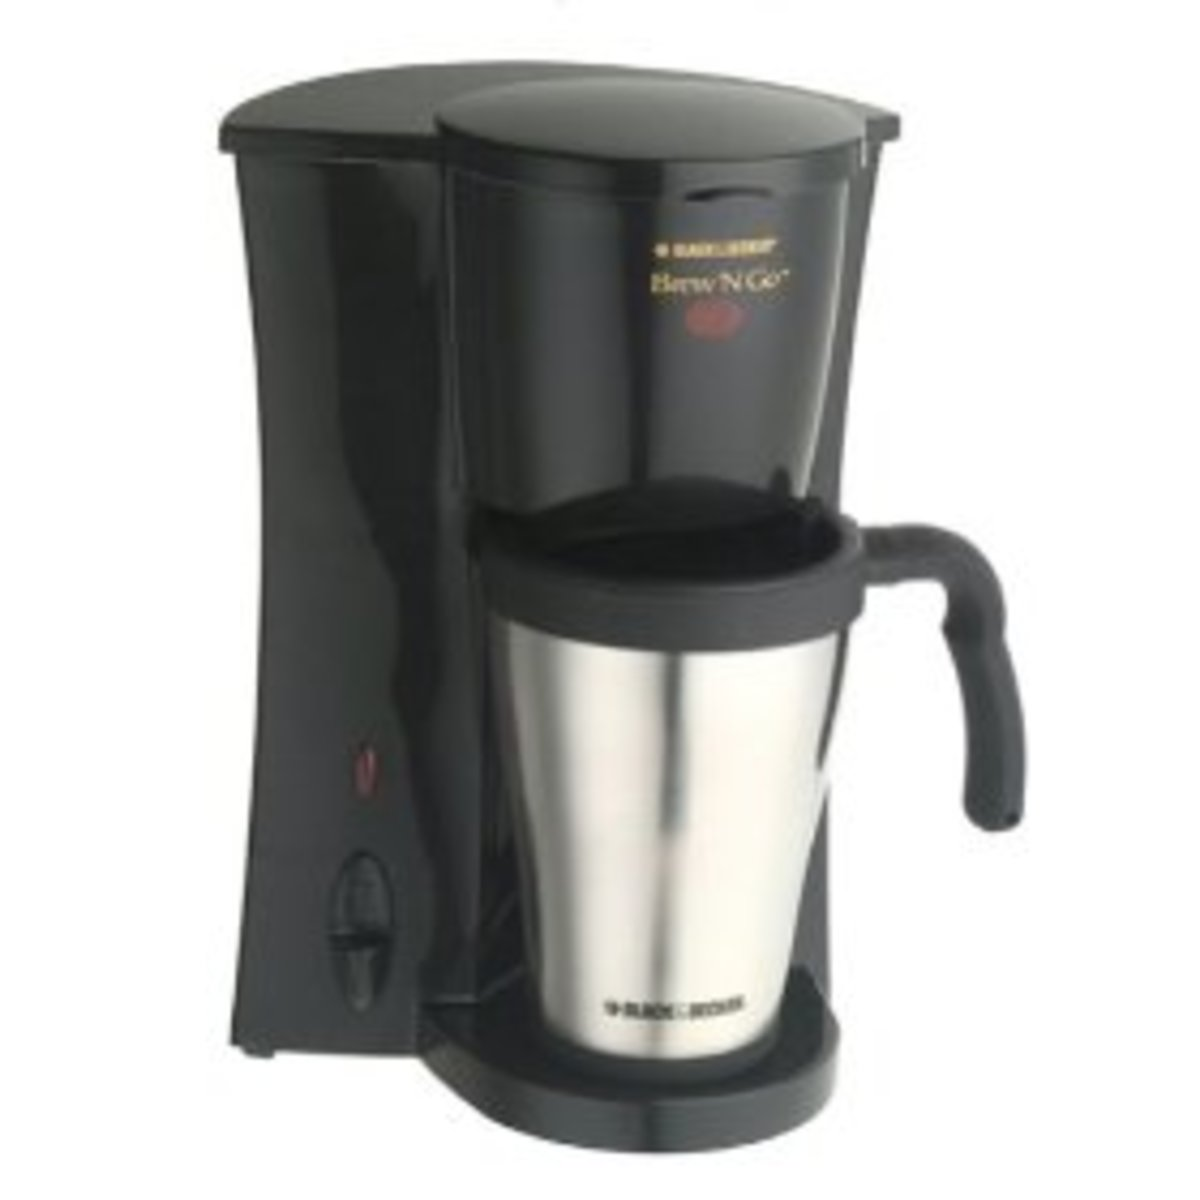 What's the Best Small Coffee Maker?